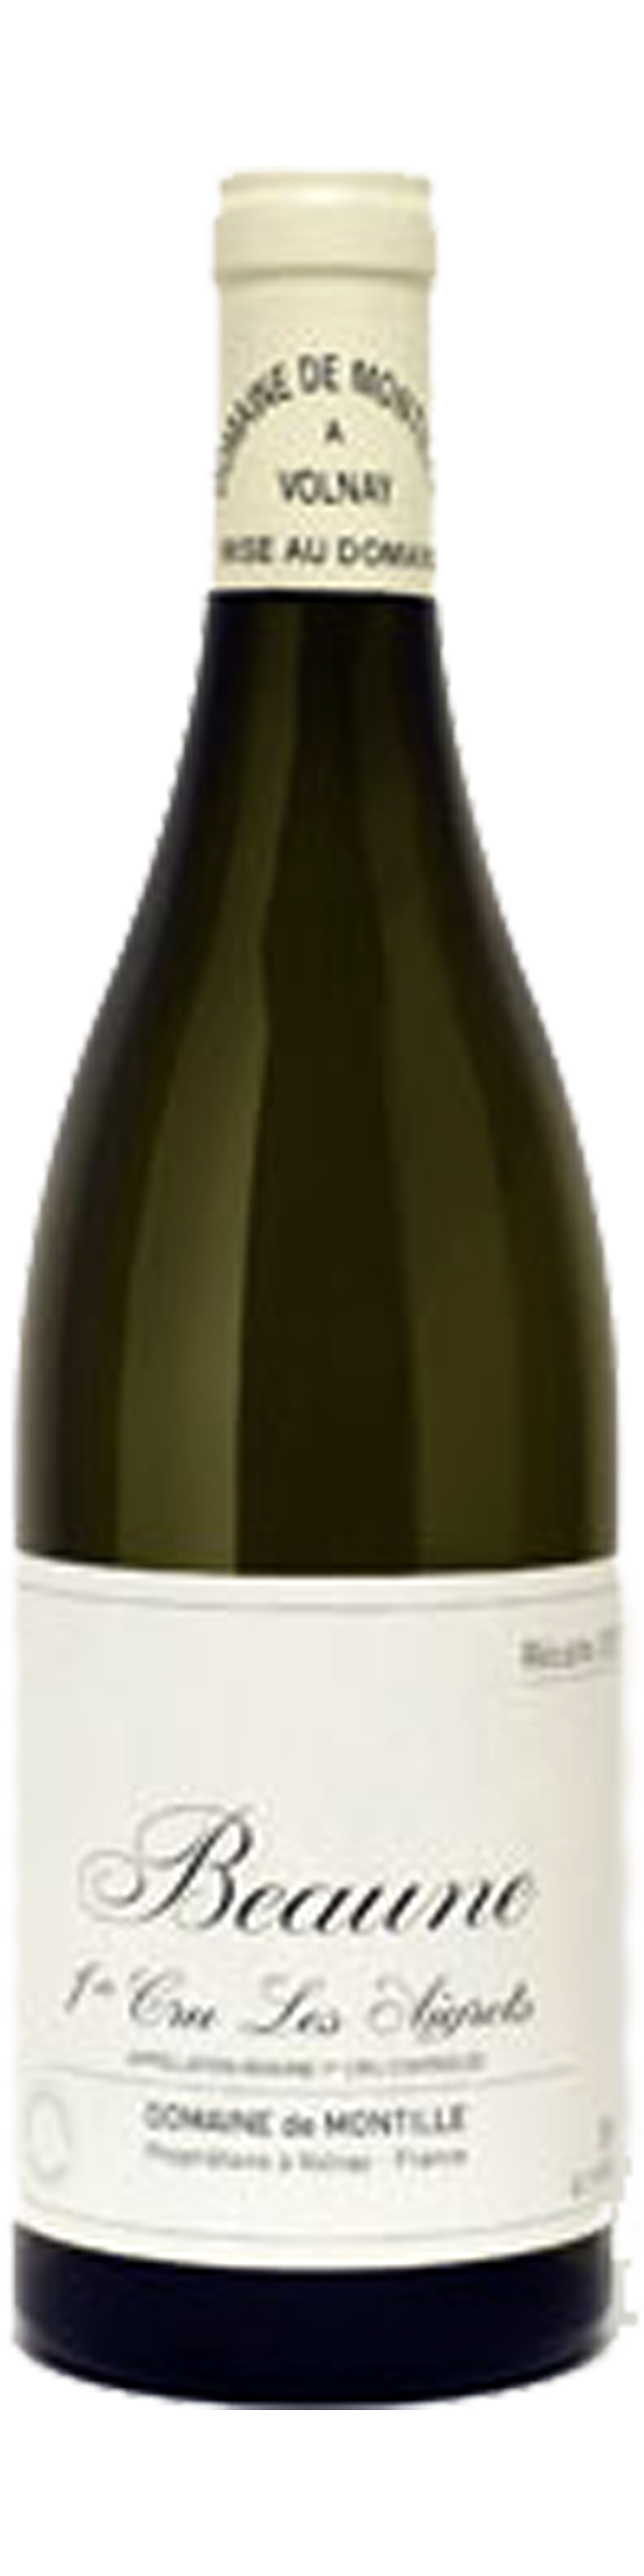 Image of product Beaune 1er Cru Les Aigrots Blanc